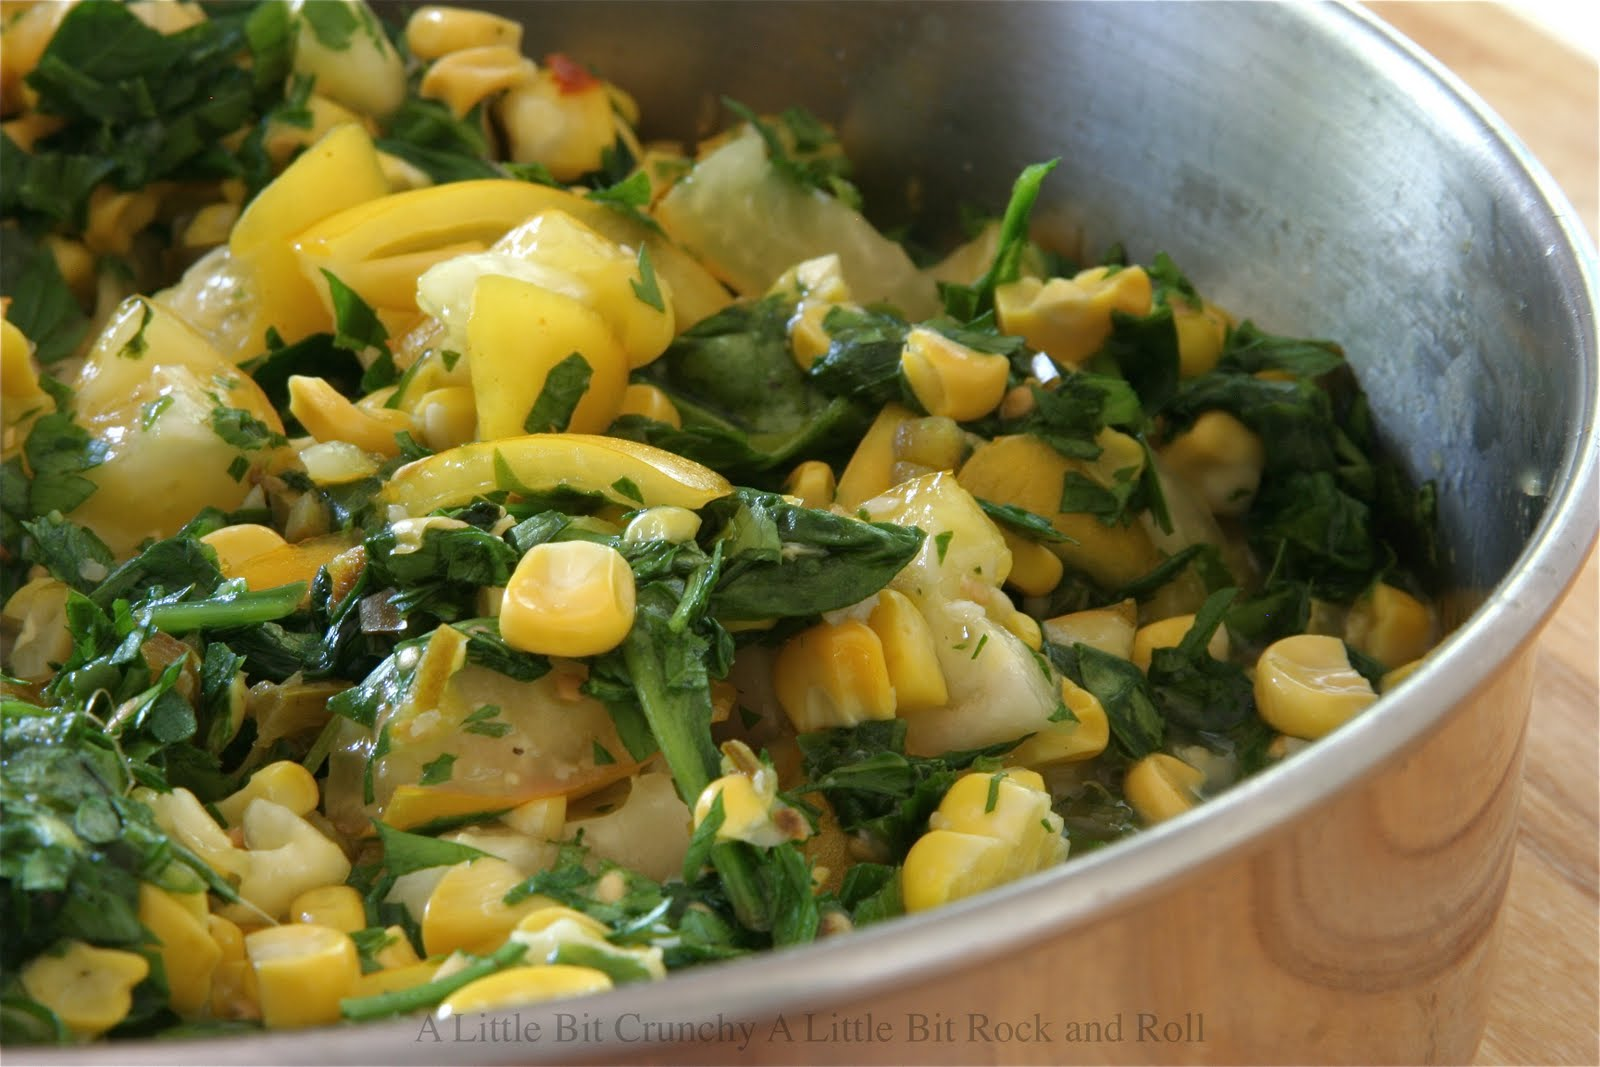 ... and Roll: Grilled Corn Pasta with Roasted Garlic, Tomatoes and Spinach